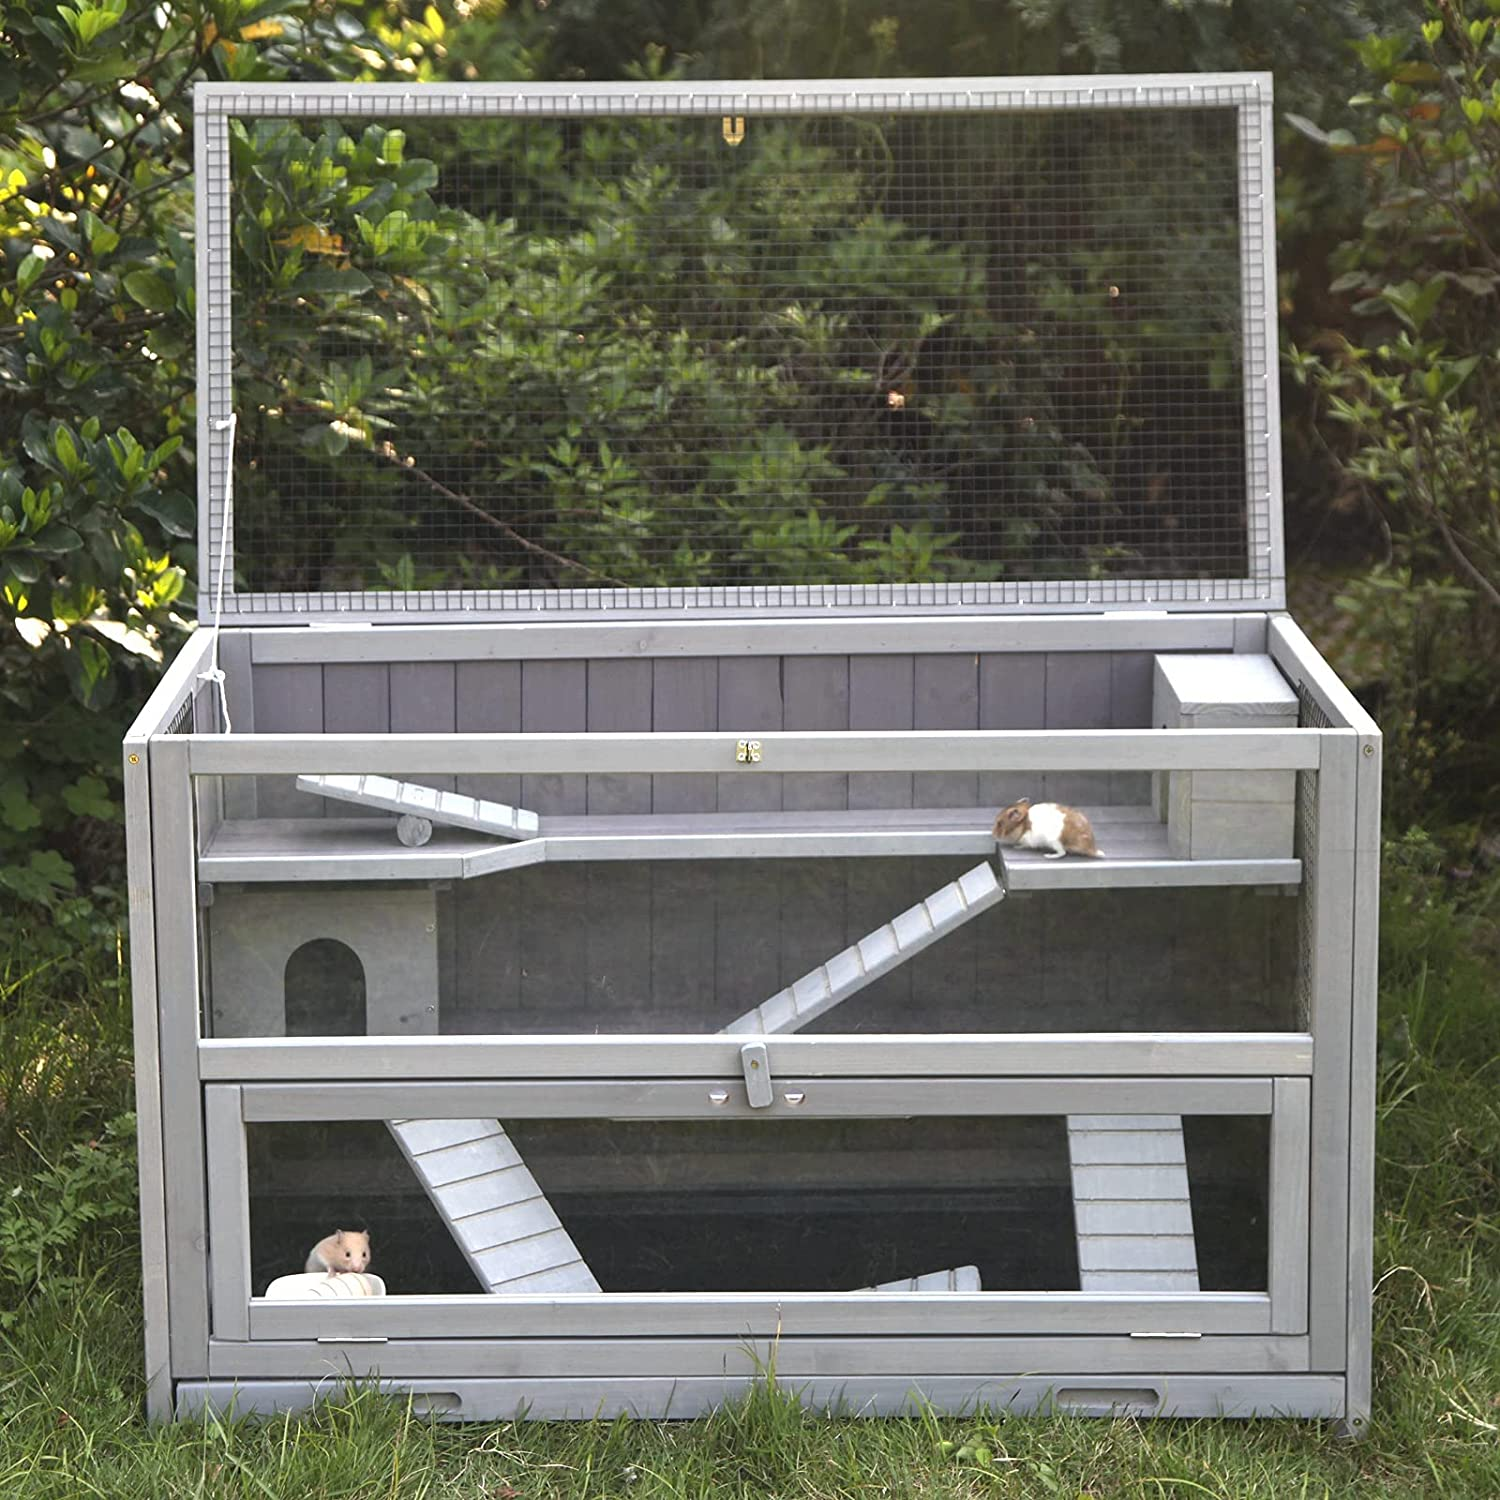 GUTINNEEN Hamster Cage Rat House with Chewing Toy, Food Bowl, Seesaw,  Hideout and Plastic Tray